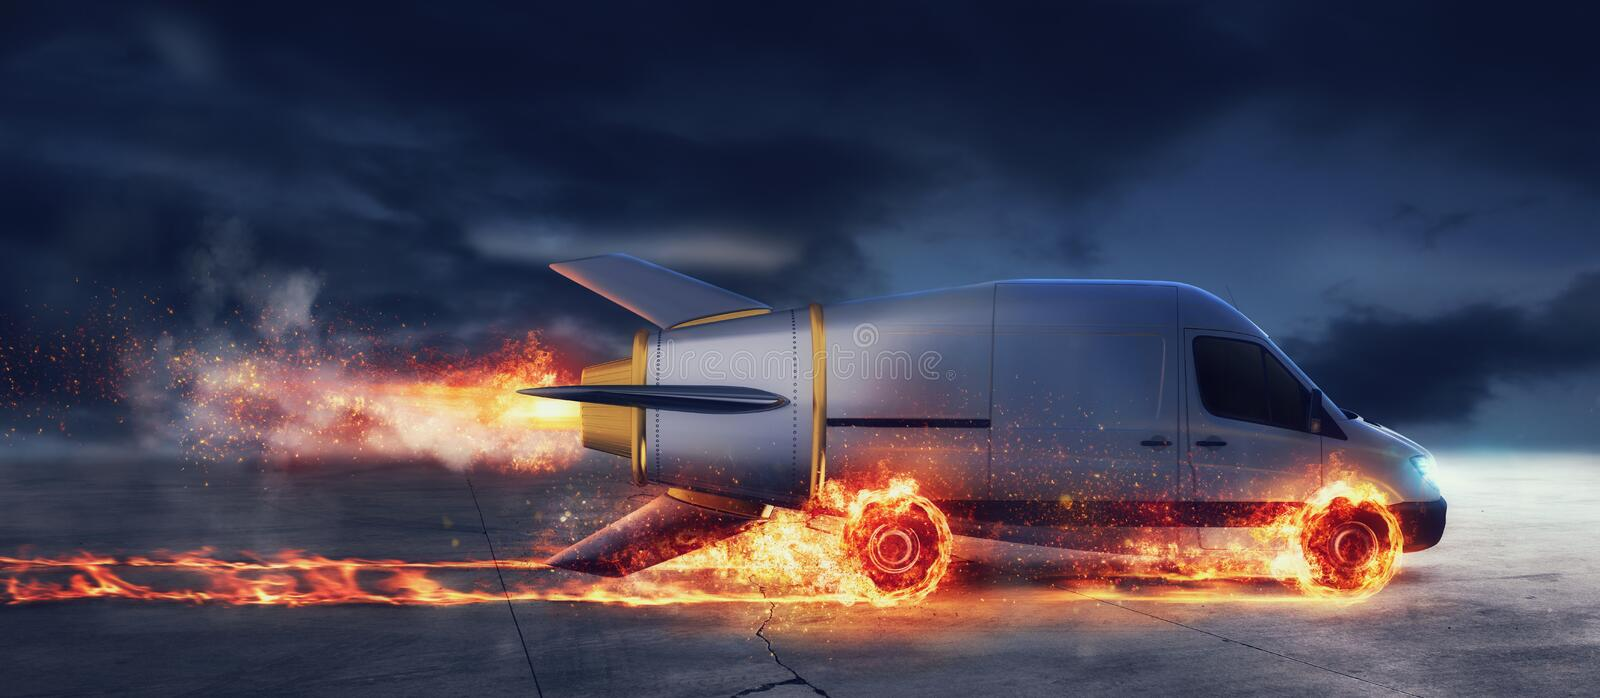 Super fast delivery of package service with van like a rocket with wheels on fire. Super fast delivery of package service van like a rocket with wheels on fire stock illustration